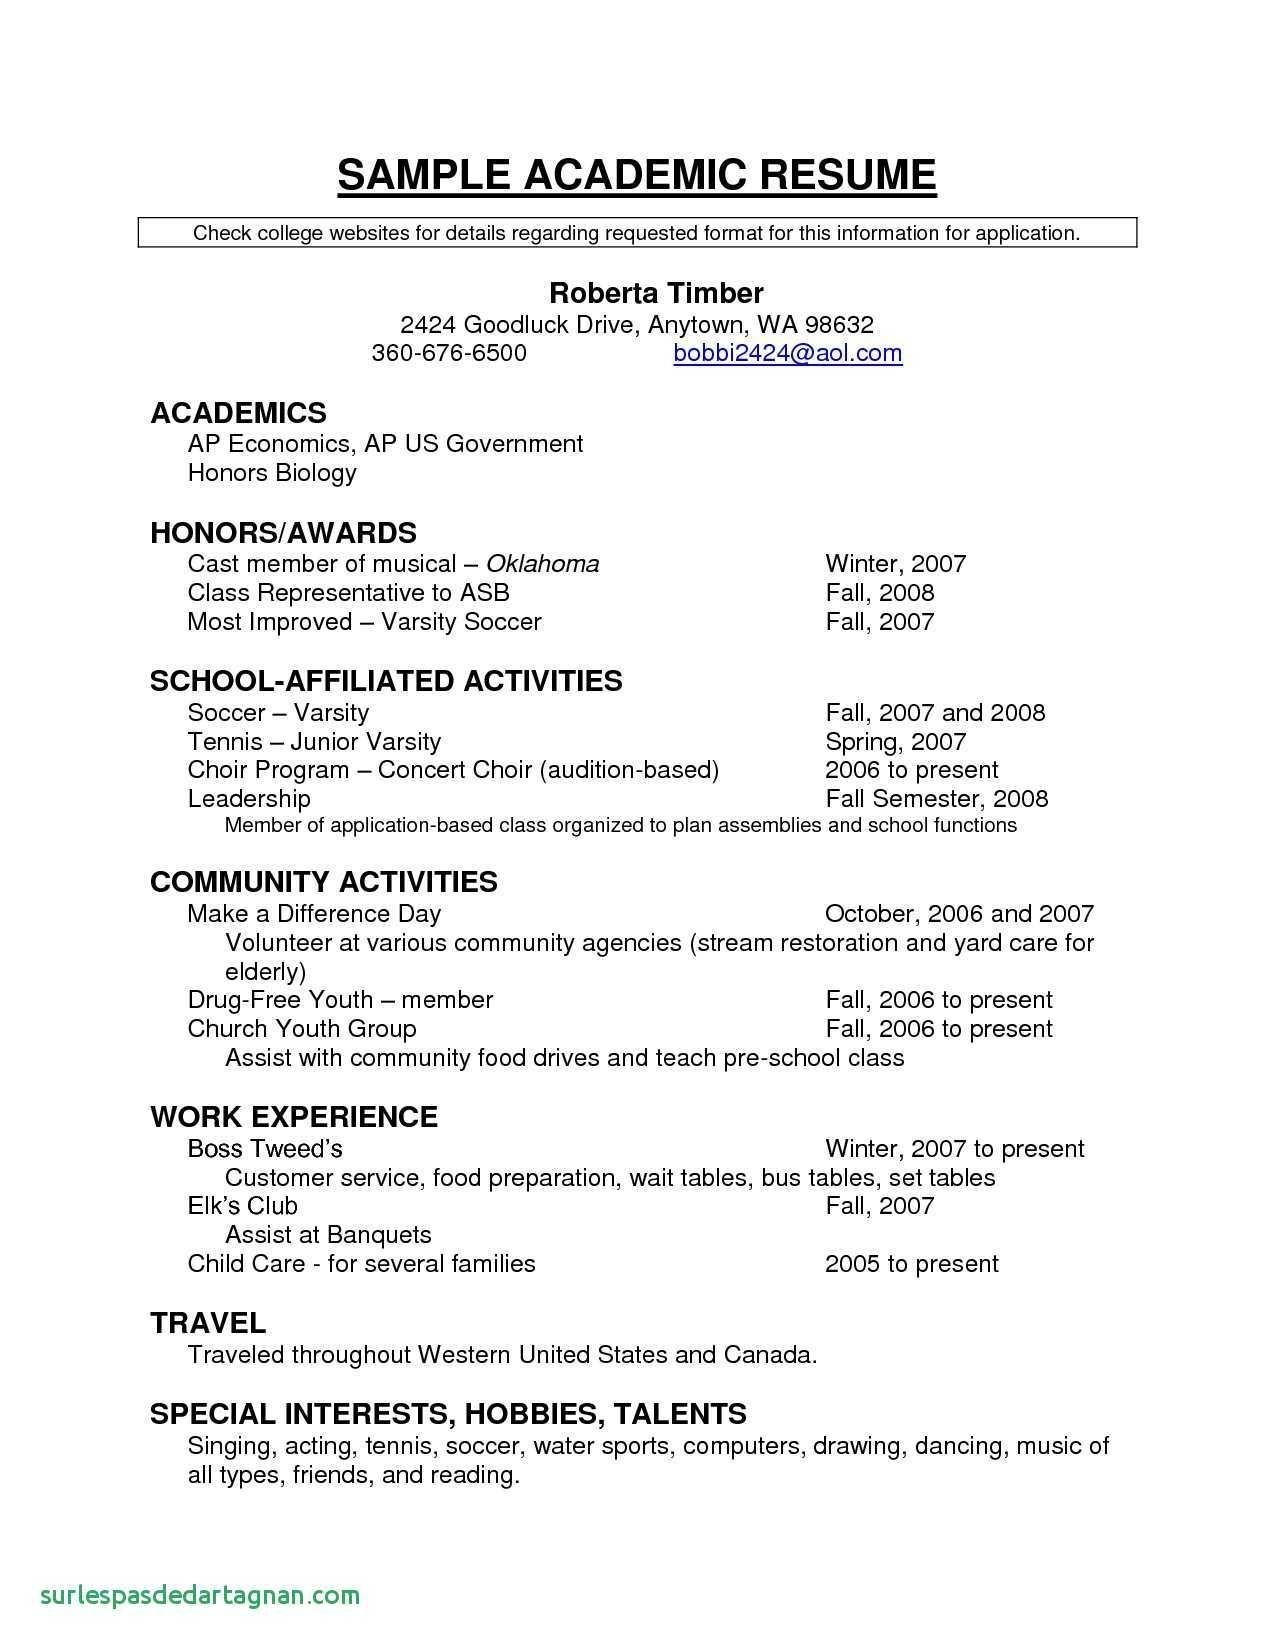 Fashion Merchandising Resume Examples - 22 Fashion Merchandising Resume